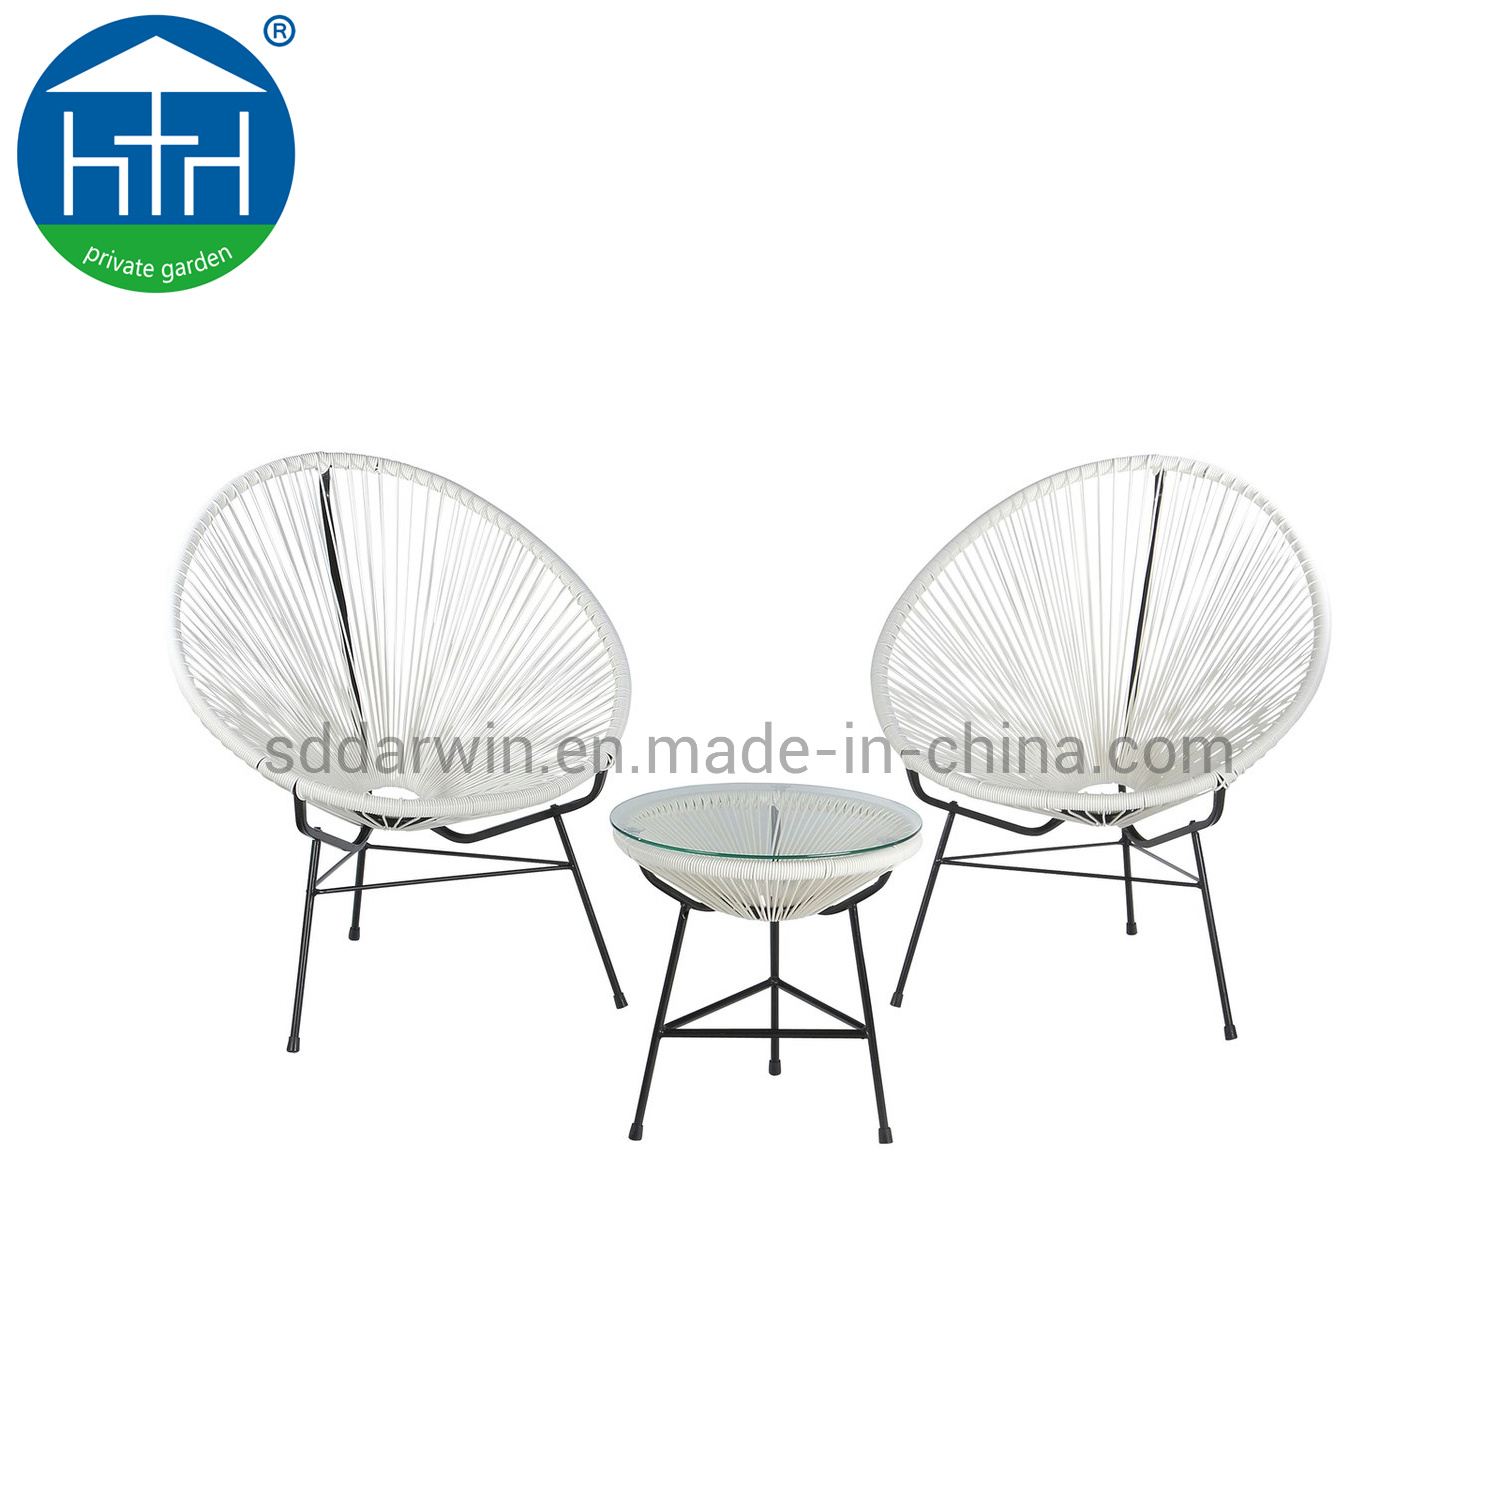 Image of: China High Quality Mid Century Modern Patio Bistro Acapulco Chair Photos Pictures Made In China Com